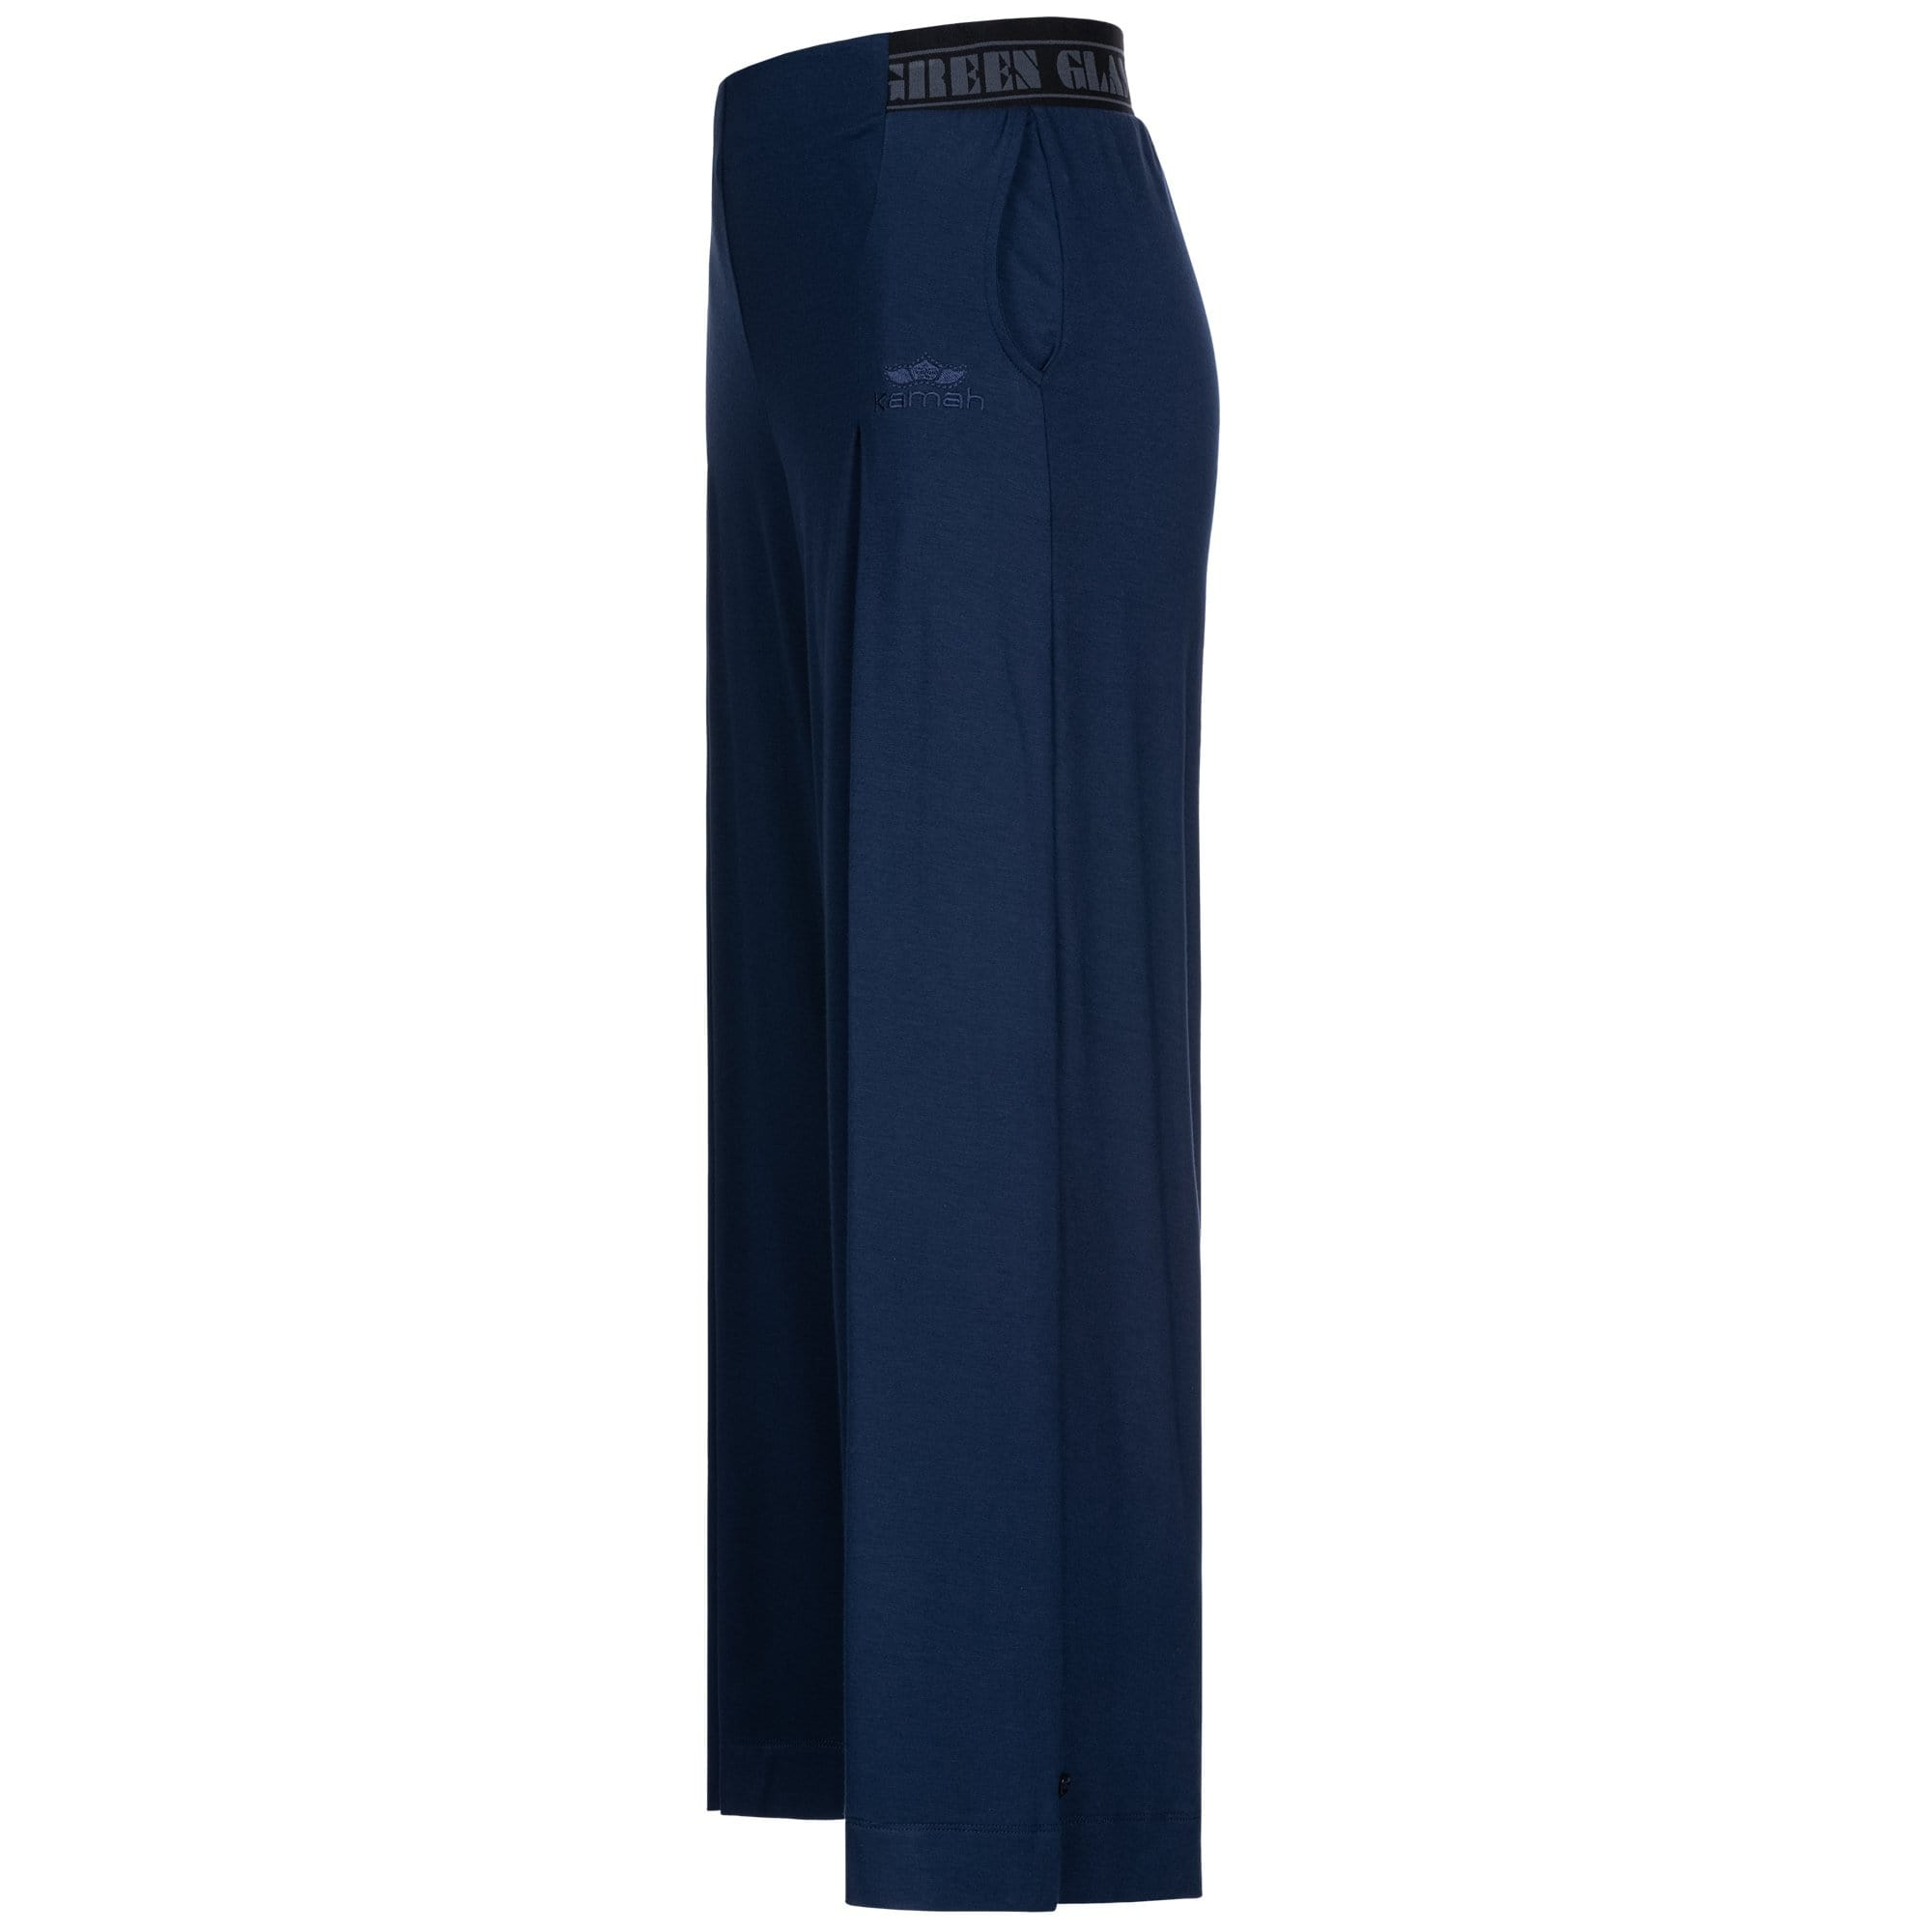 "Culotte Hose ""Wanda"", nightblue - variable 3/4 Yoga-Pant - Kamah Yoga and Style"